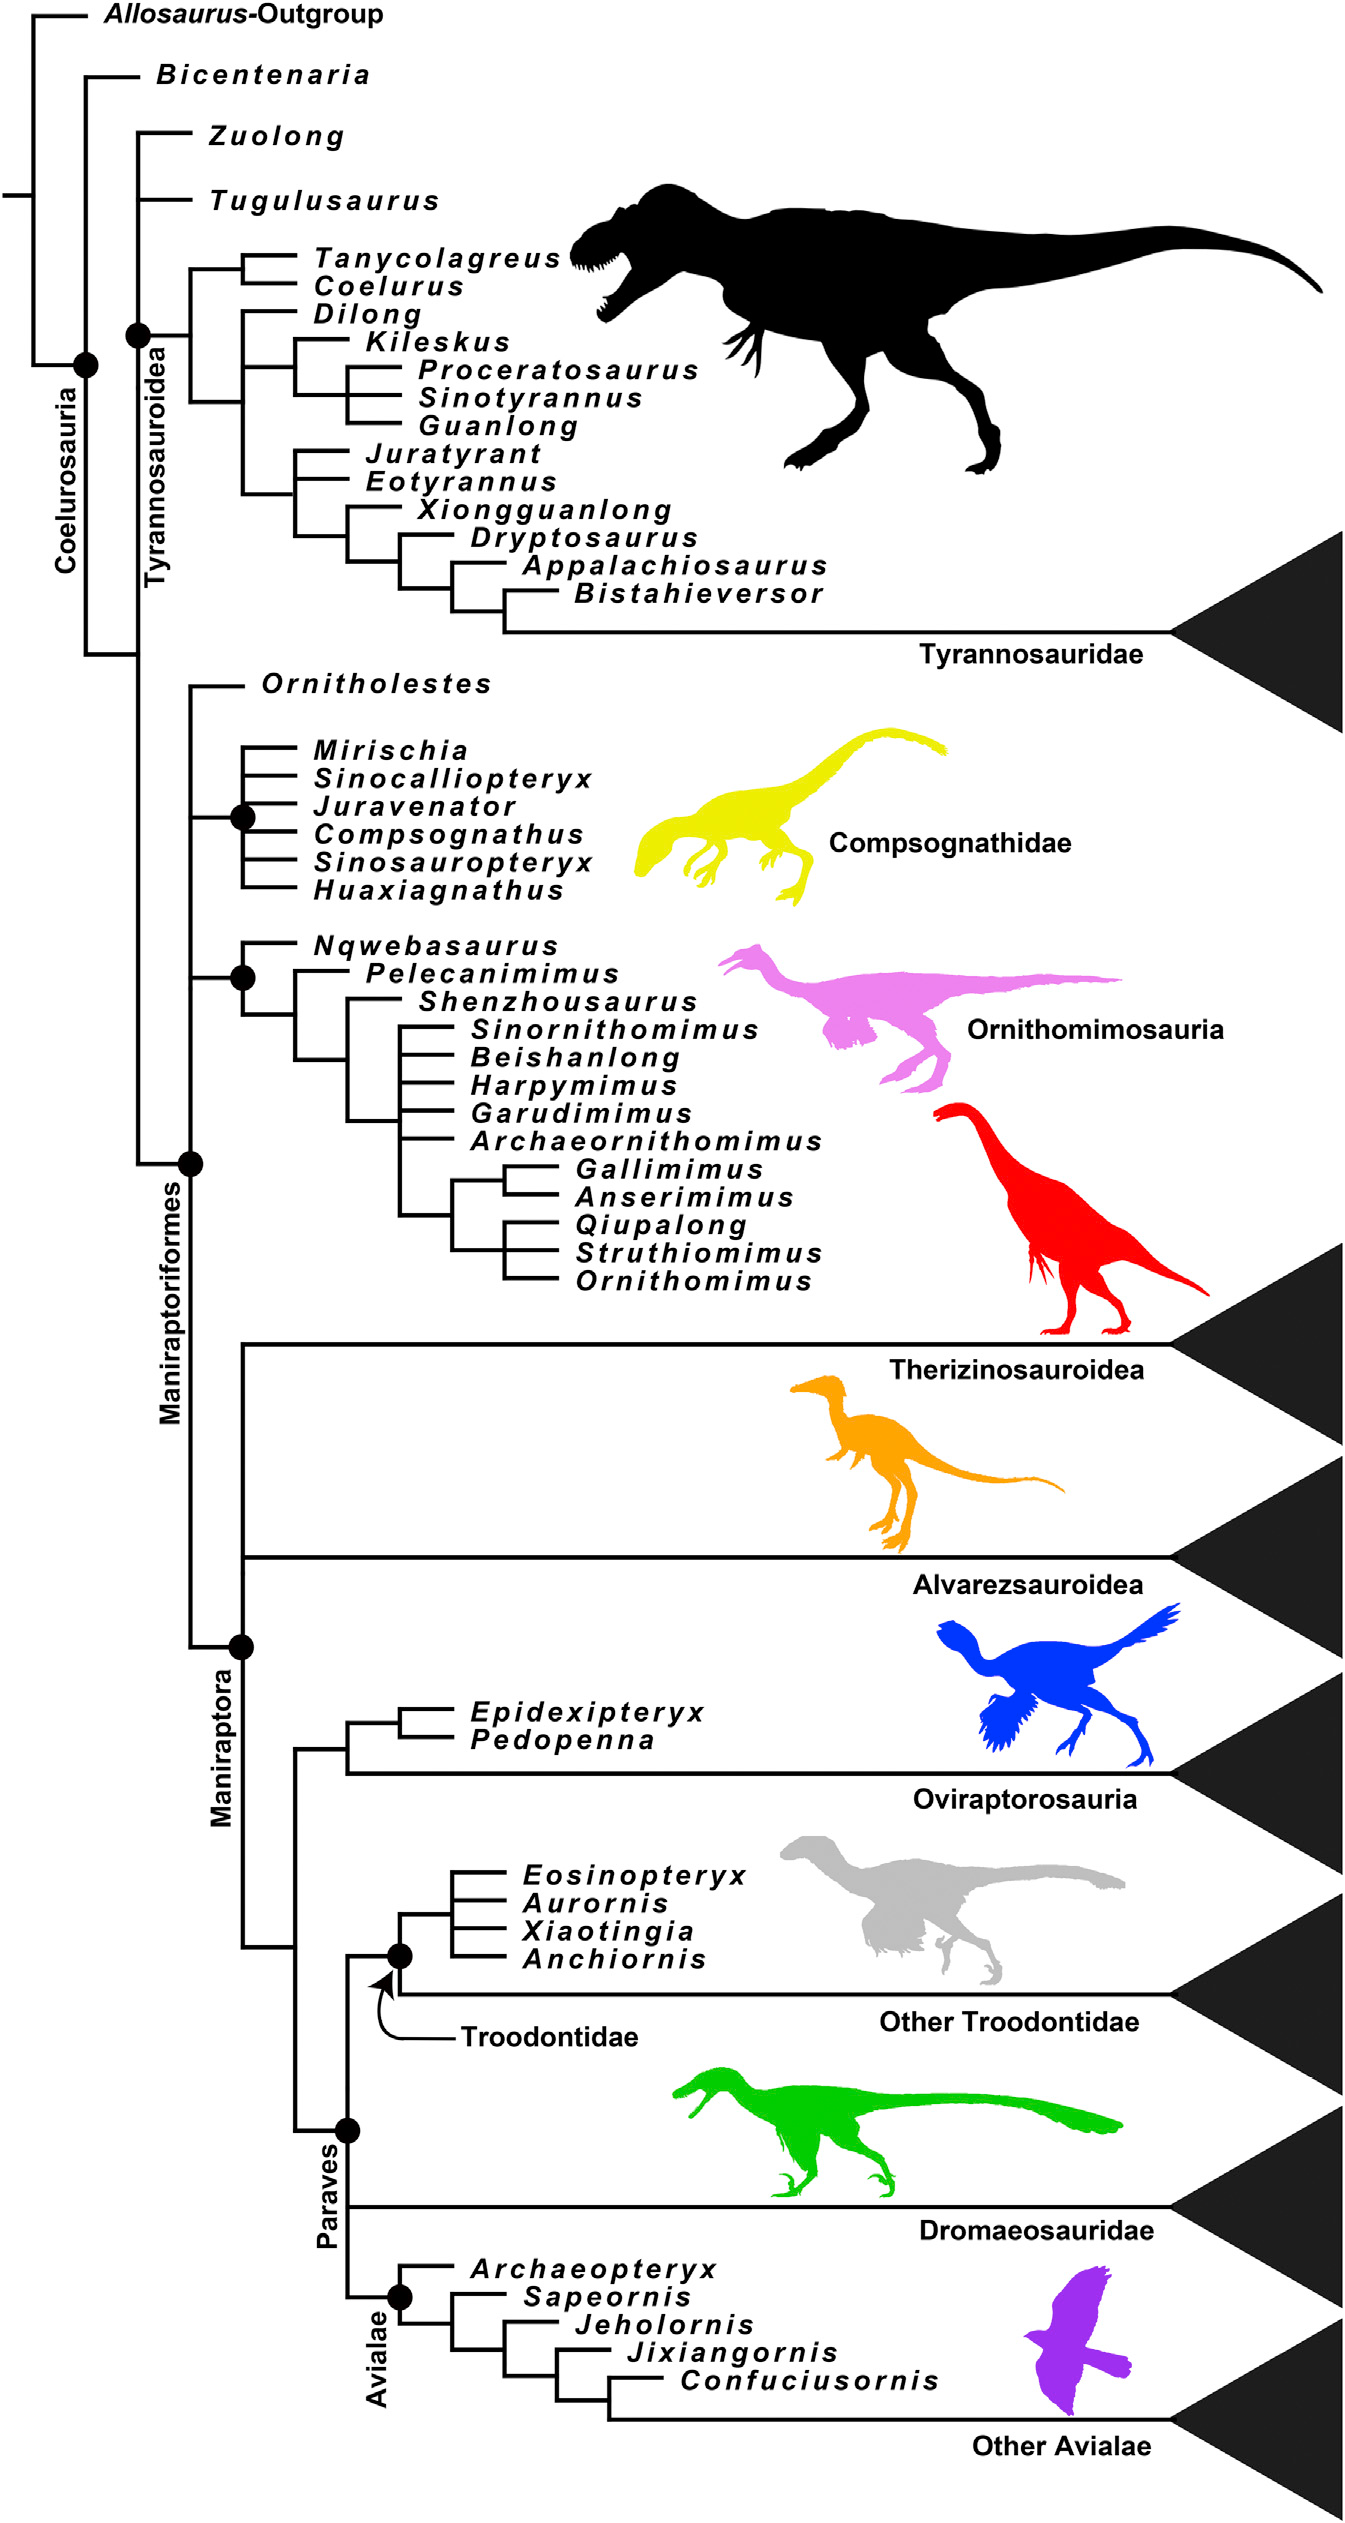 This is the phylogeny that Brusatte et al constructed for their study. You can see that birds are in a polytomy with dromaeosaurids and troodontids at the bottom. Taken from Brusatte et al 2014.